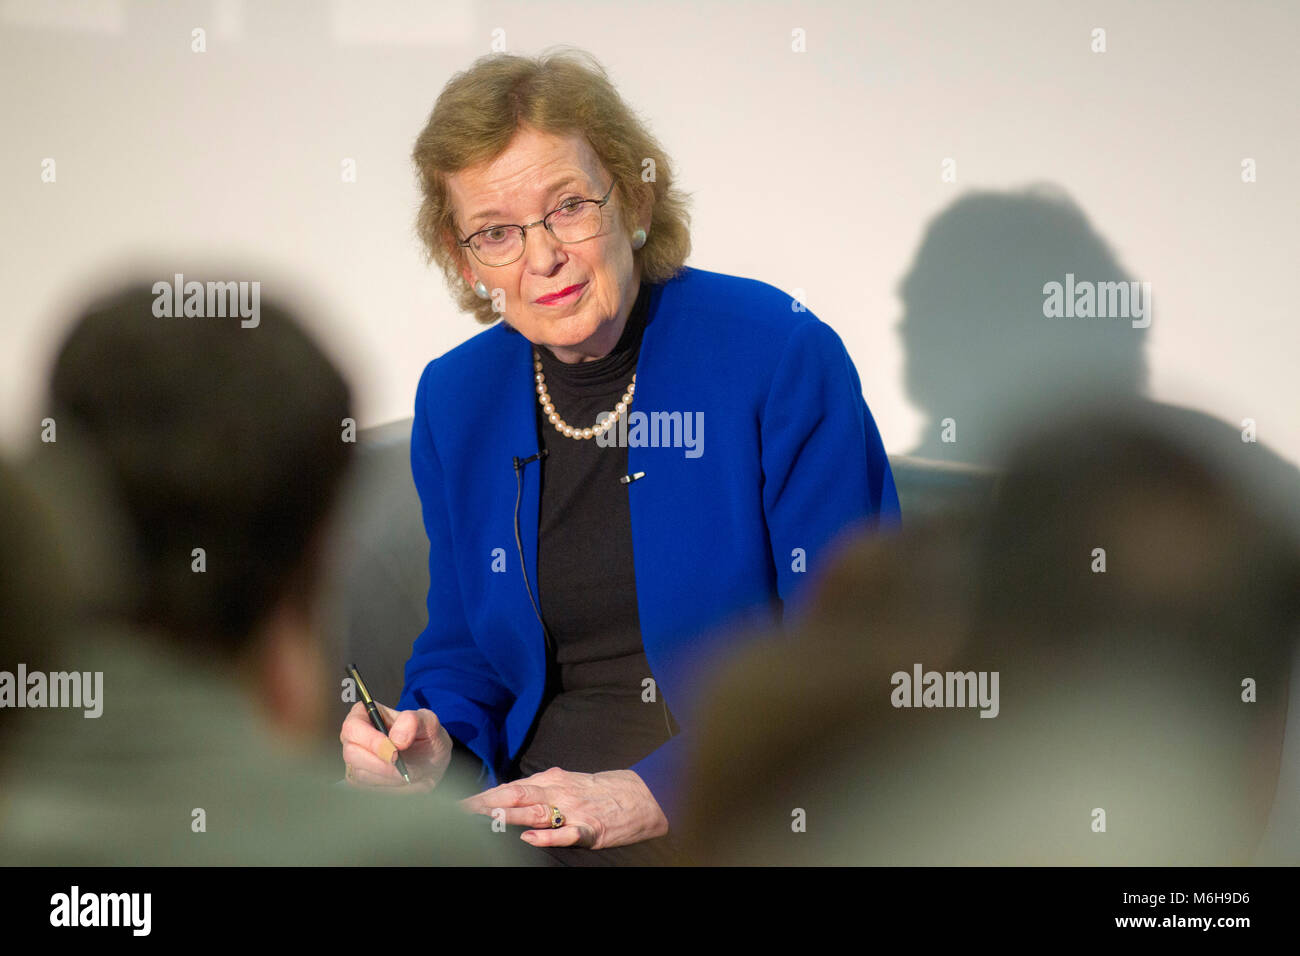 Mary Robinson lecturing at University - Stock Image